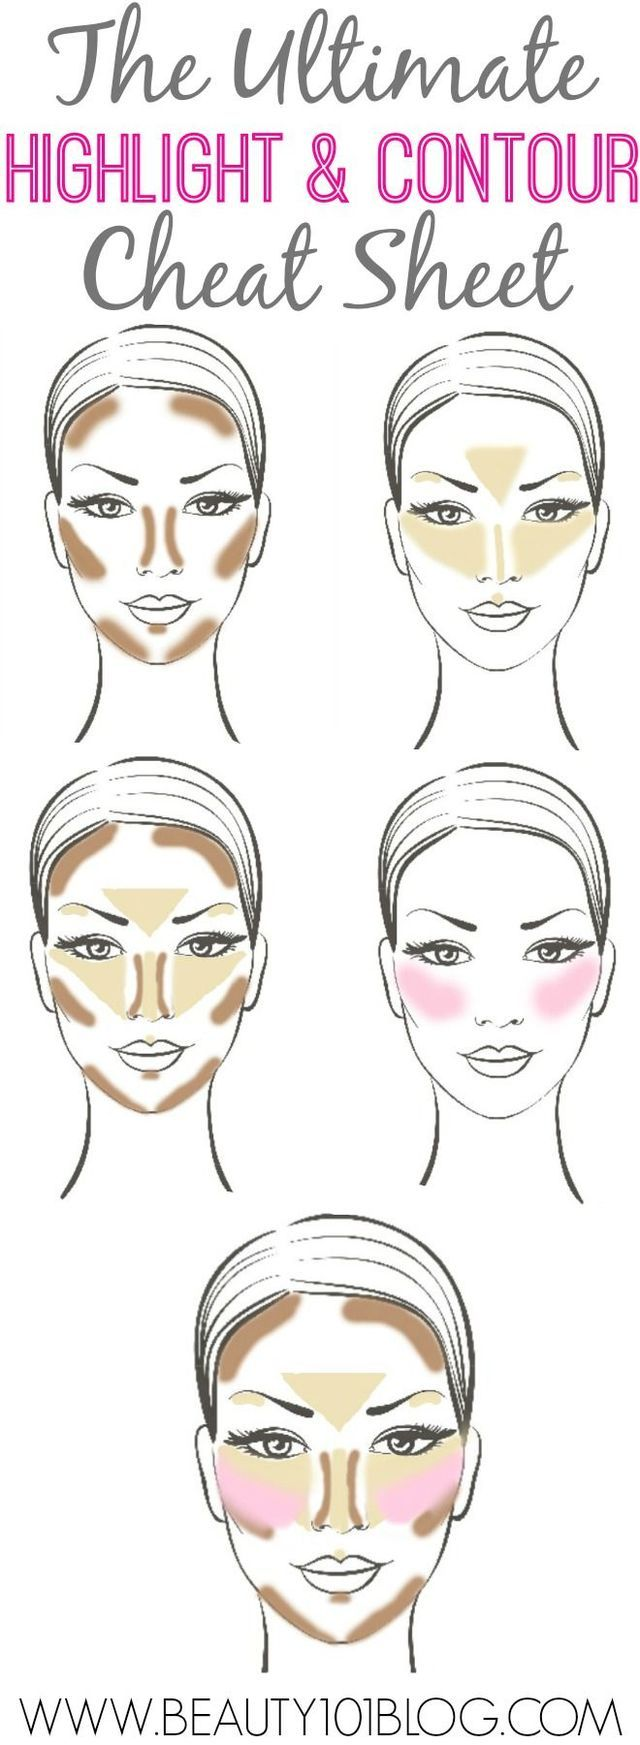 Hi Beauties,Today's post features the ultimate and simplest cheat sheet I have come across to understanding everything there is to know about highlighting and contouring!A special thank you to Casey f